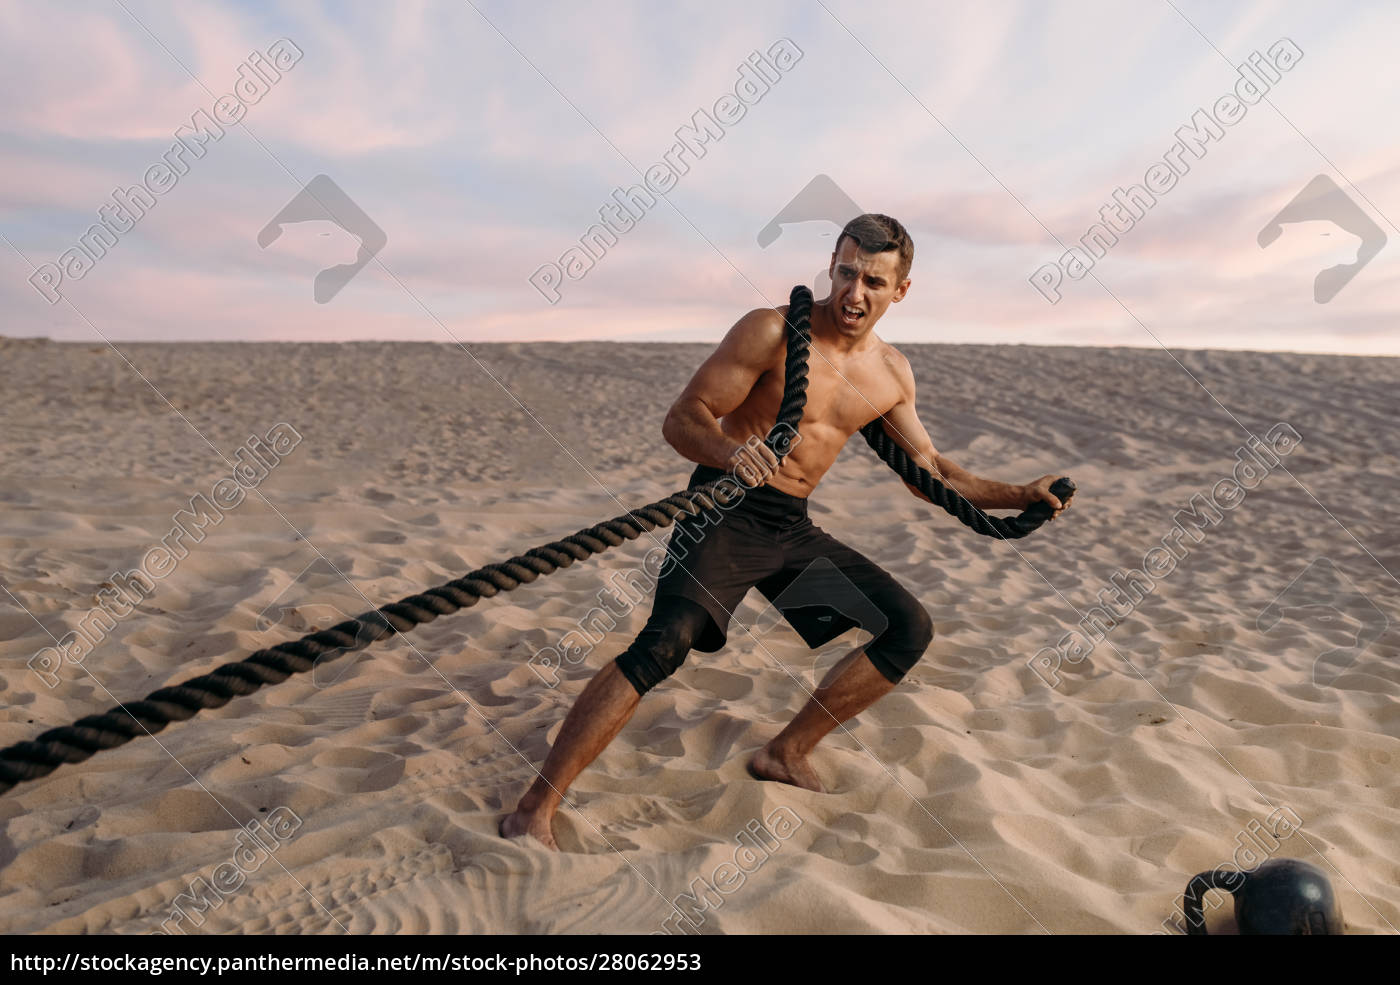 muscular, man, doing, exercise, with, rope - 28062953